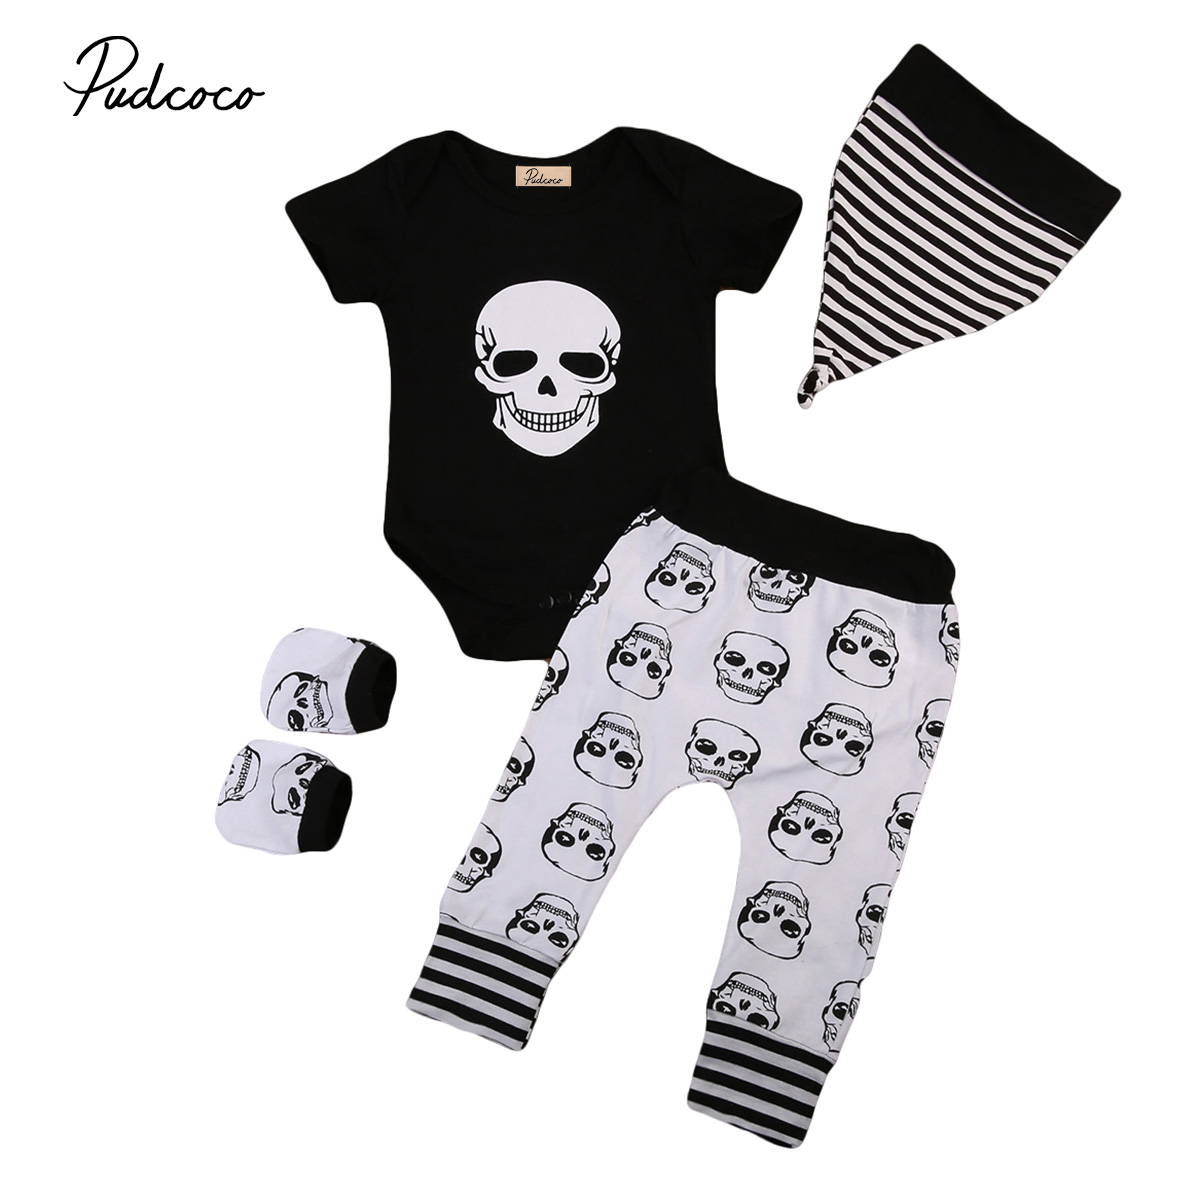 Pudcoco Fashion Newborn Baby Boy Girl Clothes Skull Short Sleeve Tops Romper Pants Hat 4pcs Outfits Cotton Summer Baby Suit